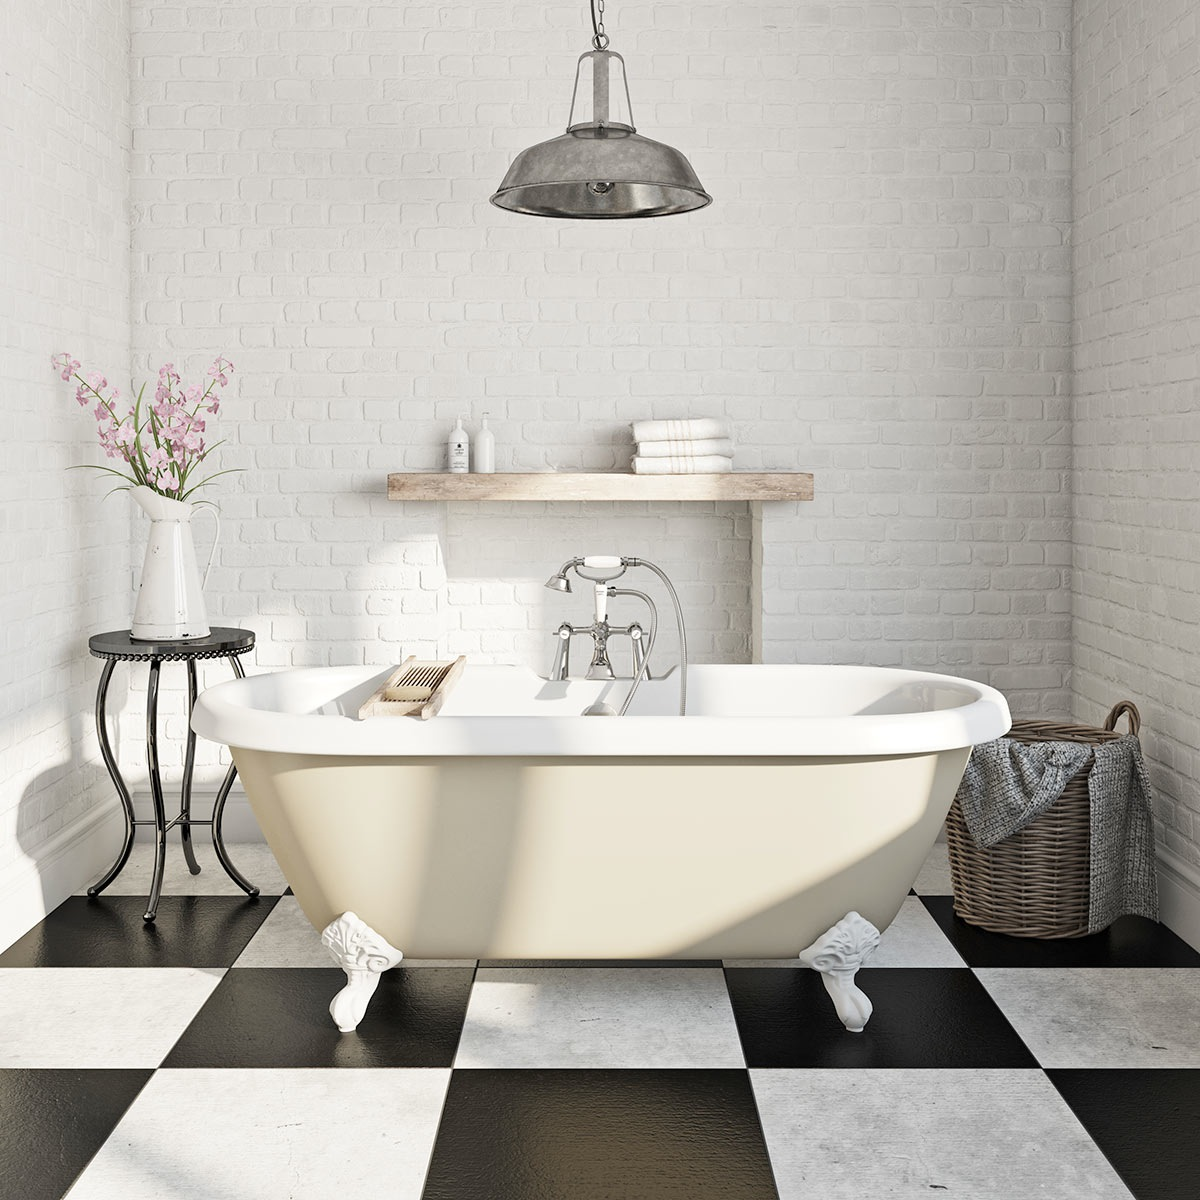 Introducing our limited edition coloured baths